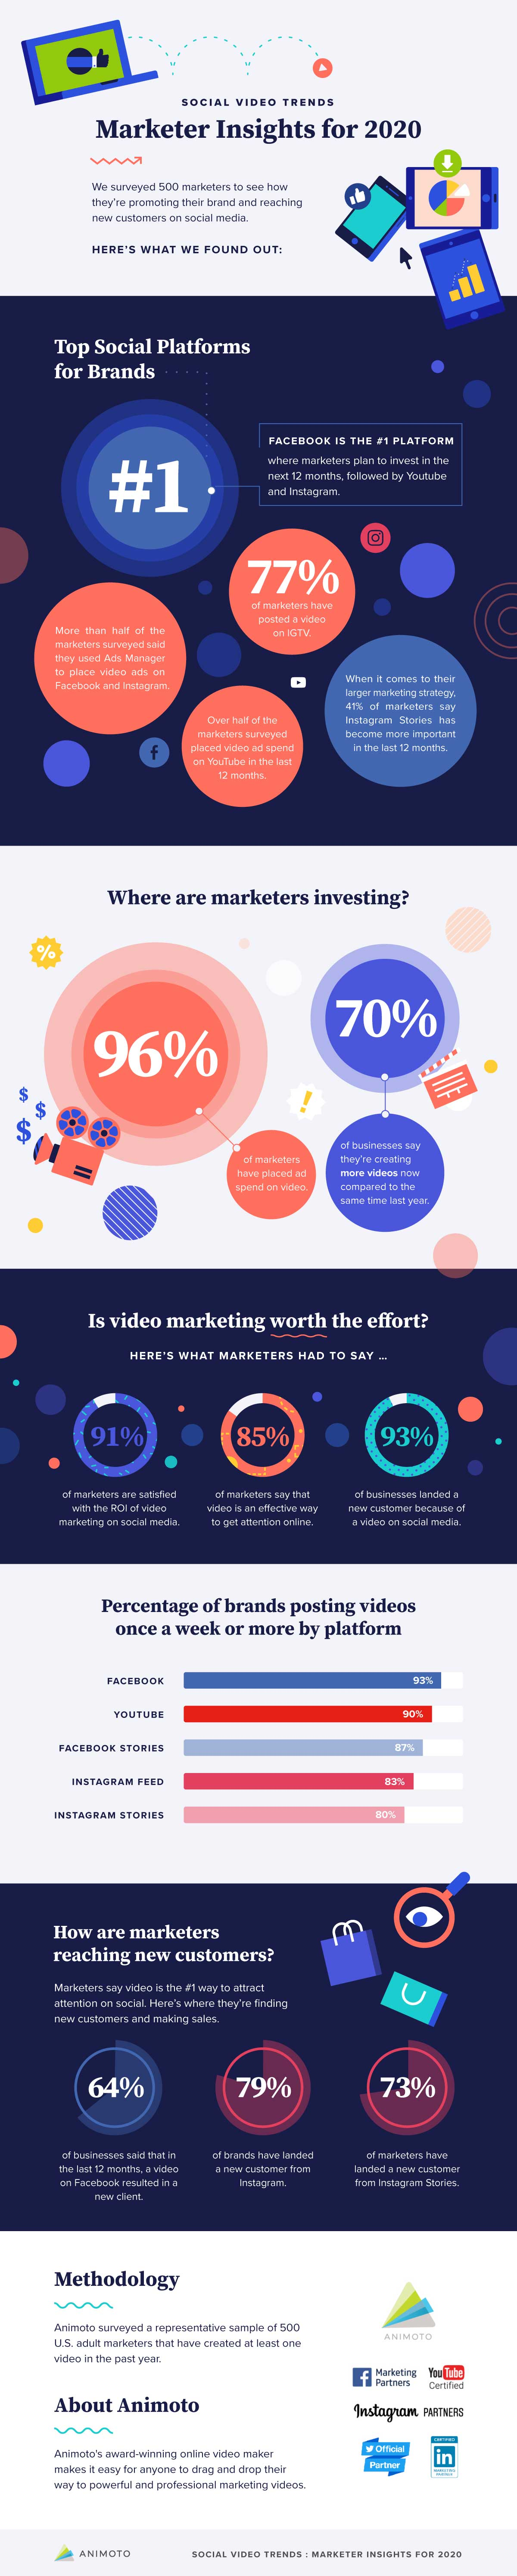 Social Video Trends Marketer Insights for 2020 Infographic